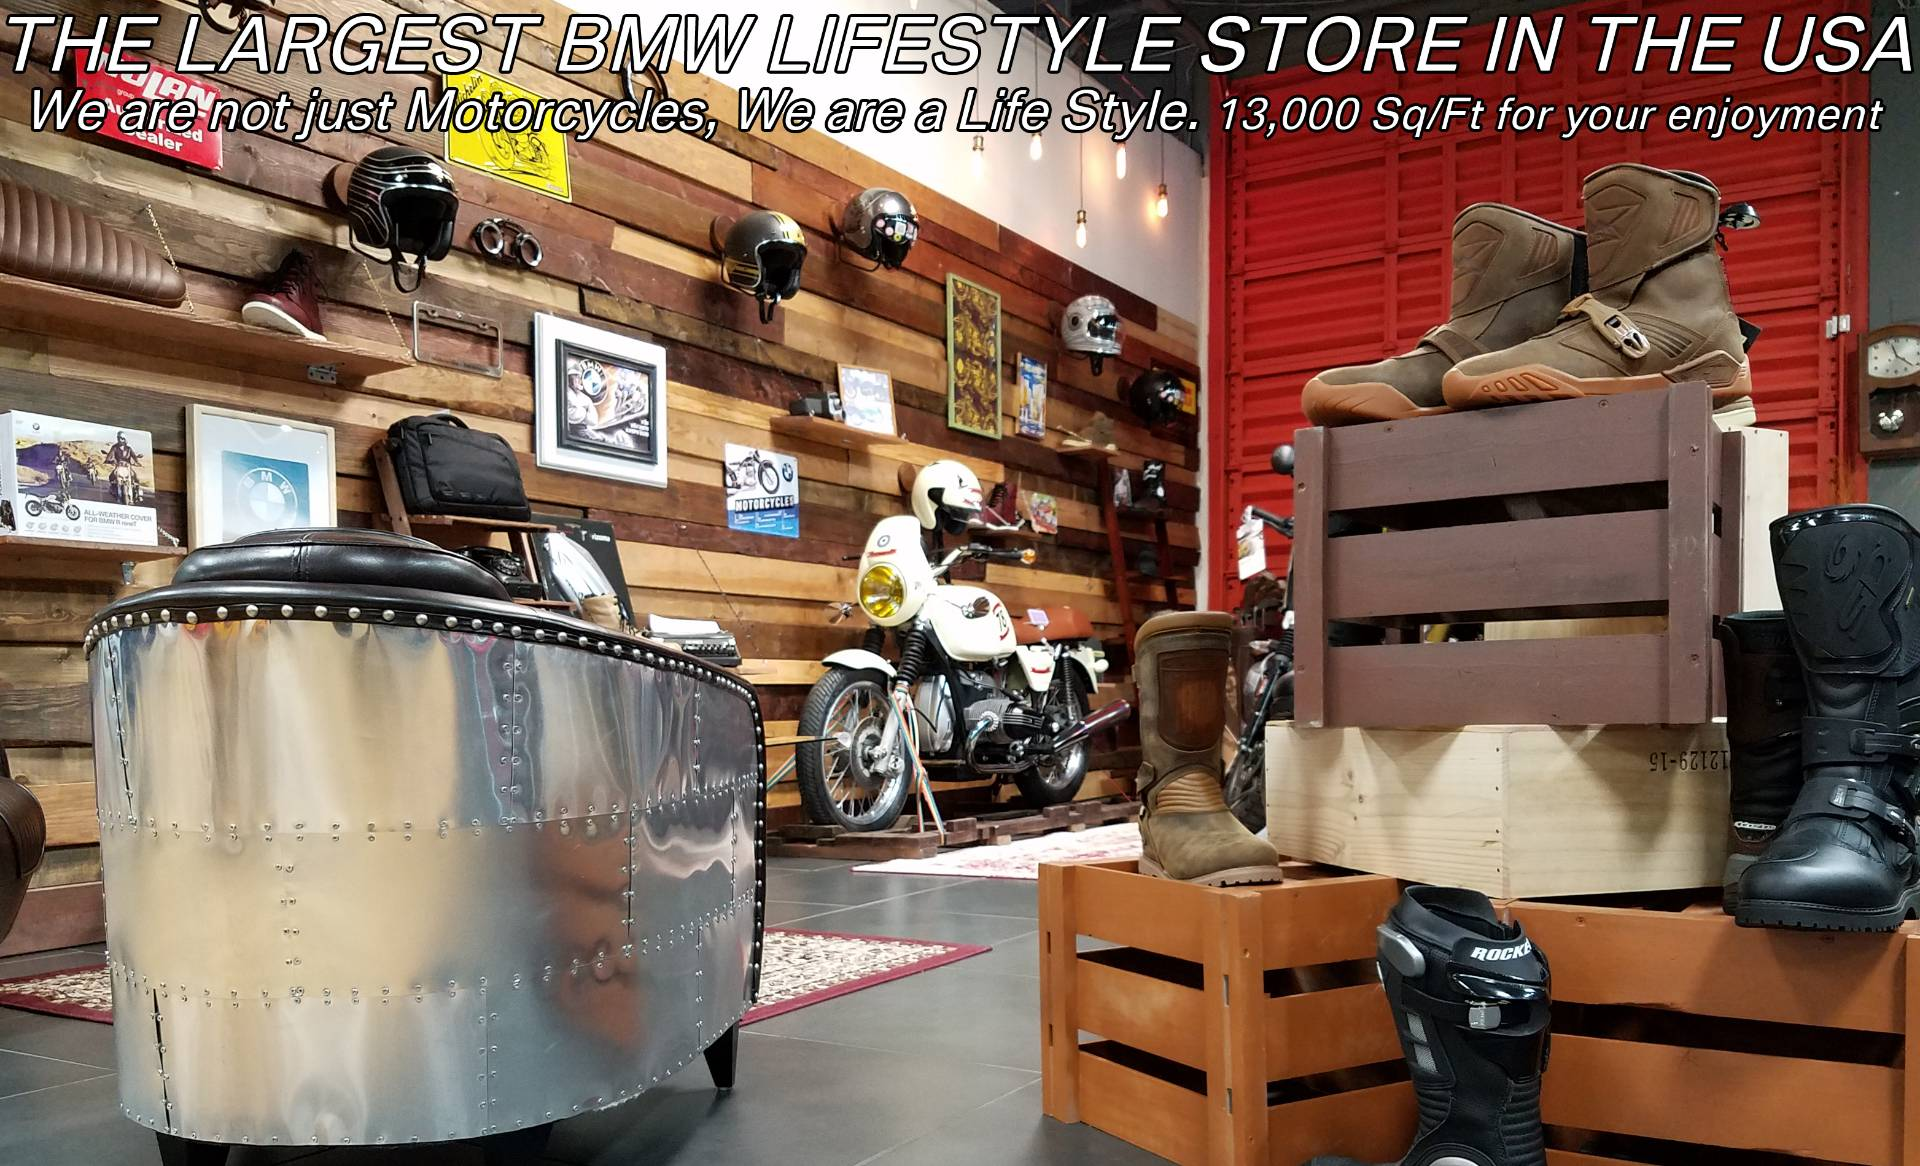 New 2019 BMW R 1250 GSA for sale, BMW for sale R 1250GSA, BMW Motorcycle R1250GSA, new BMW 1250GS Adventure, R1250GSAdventure, BMW Adventure, BMW Motorcycles of Miami, Motorcycles of Miami - Photo 49